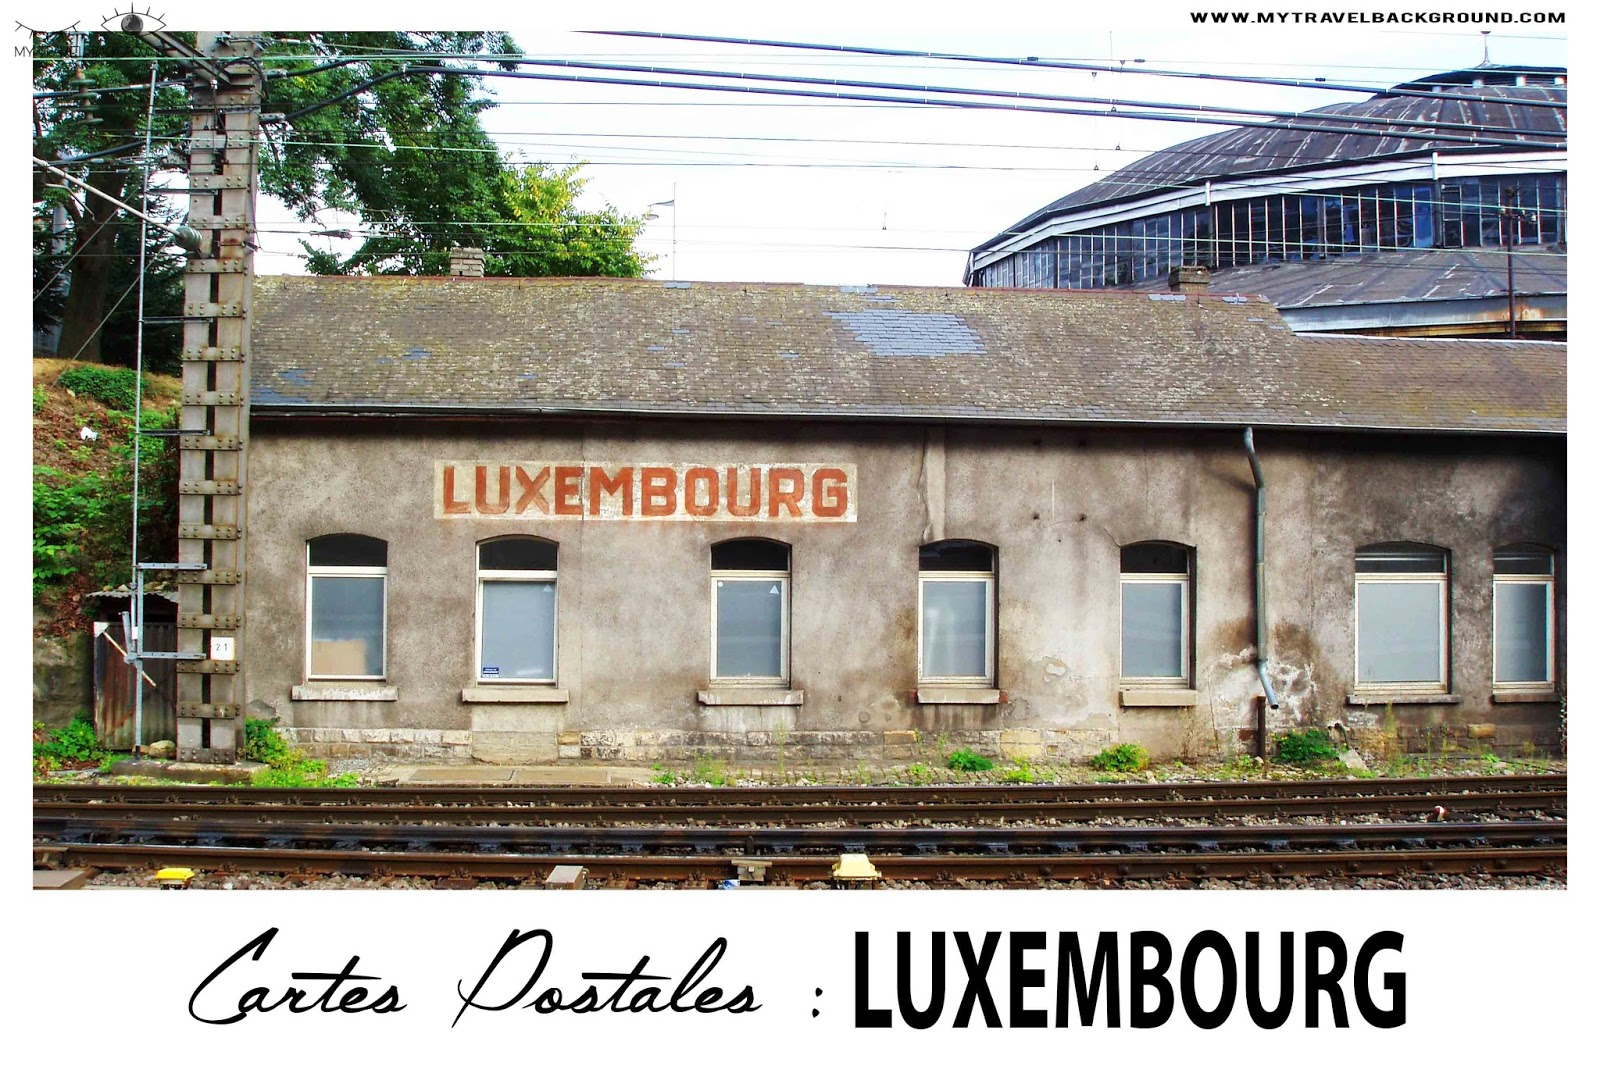 My Travel Background : Cartes Postale Luxembourg